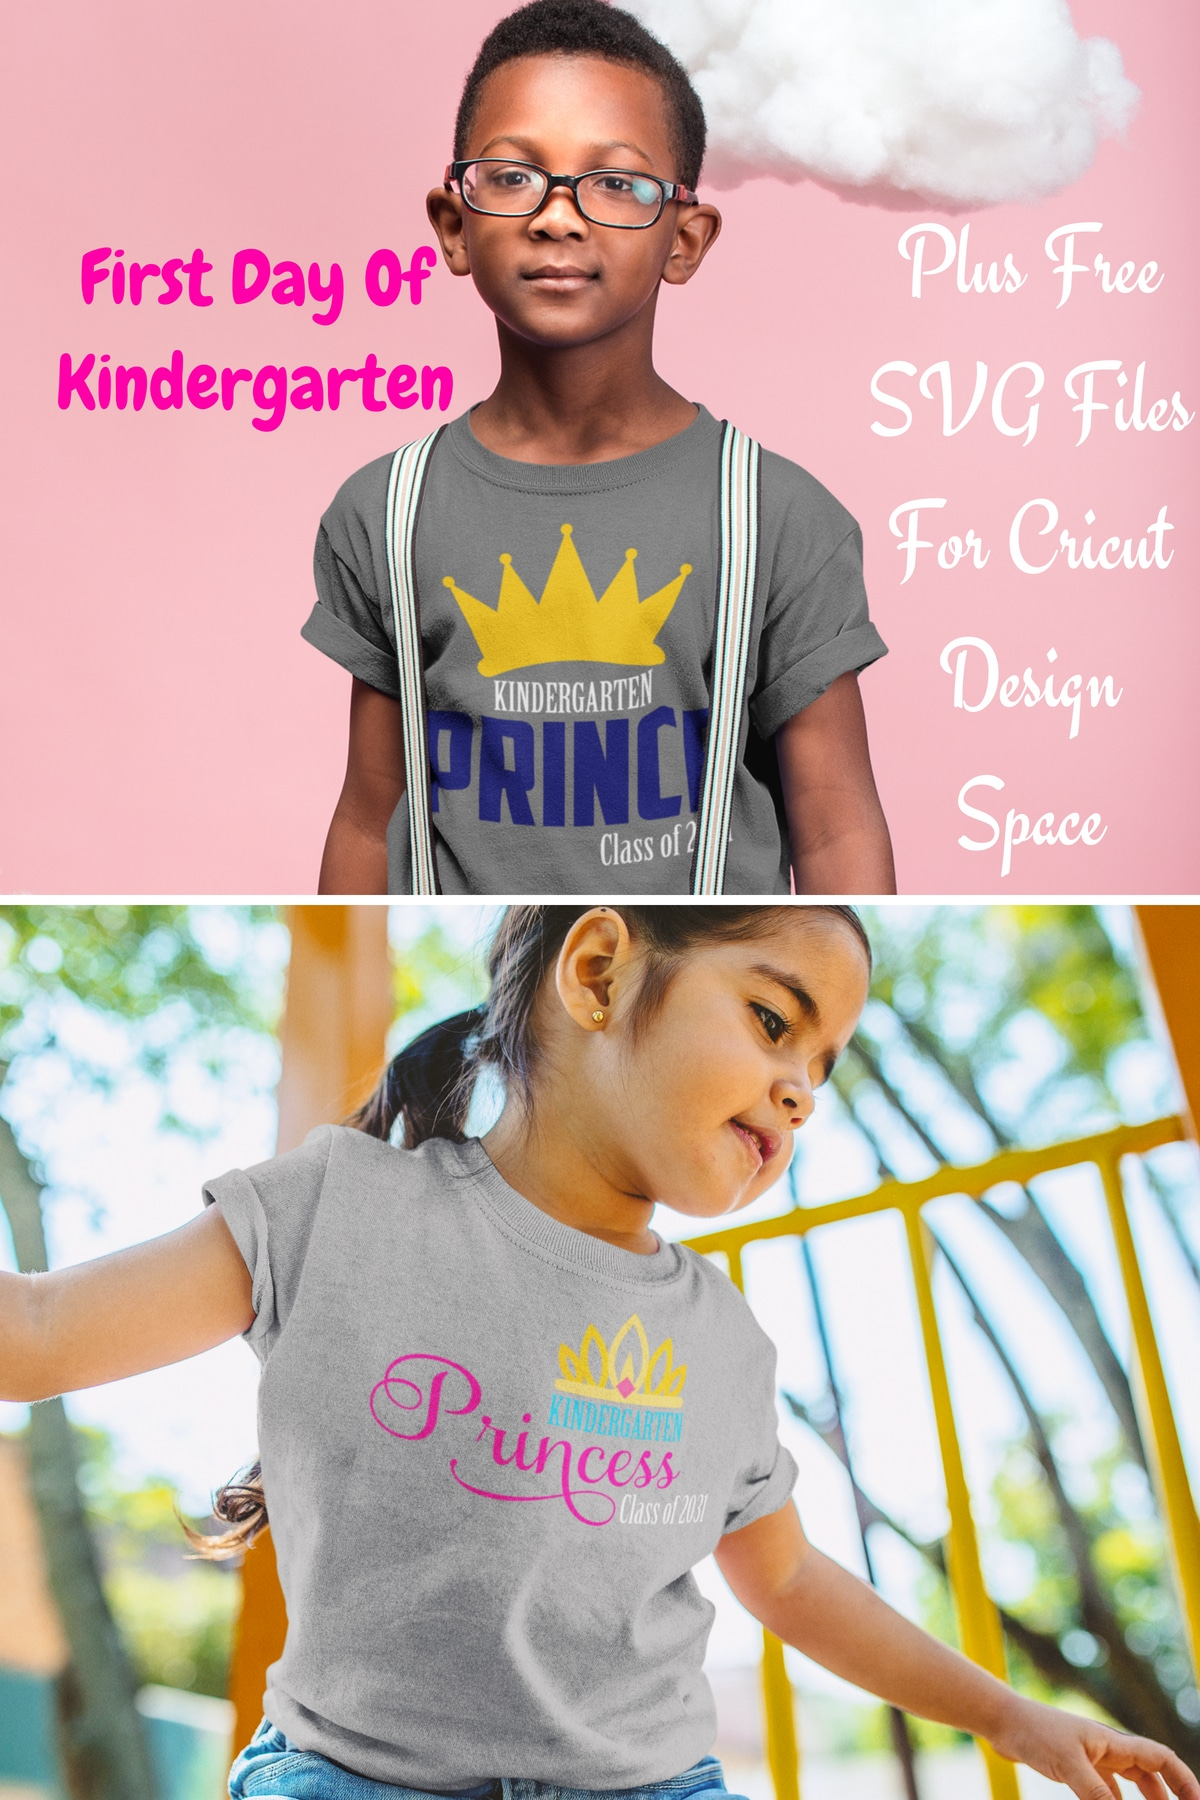 Can you believe that before we know it, school will be back in session and so many kids will be starting their first day of kindergarten? Making that first day memorable with a great outfit is easy with these Free SVG Files For Cricut Design Space. #cricut #designspace #cricutdesignspace #freesvg #kindergarten